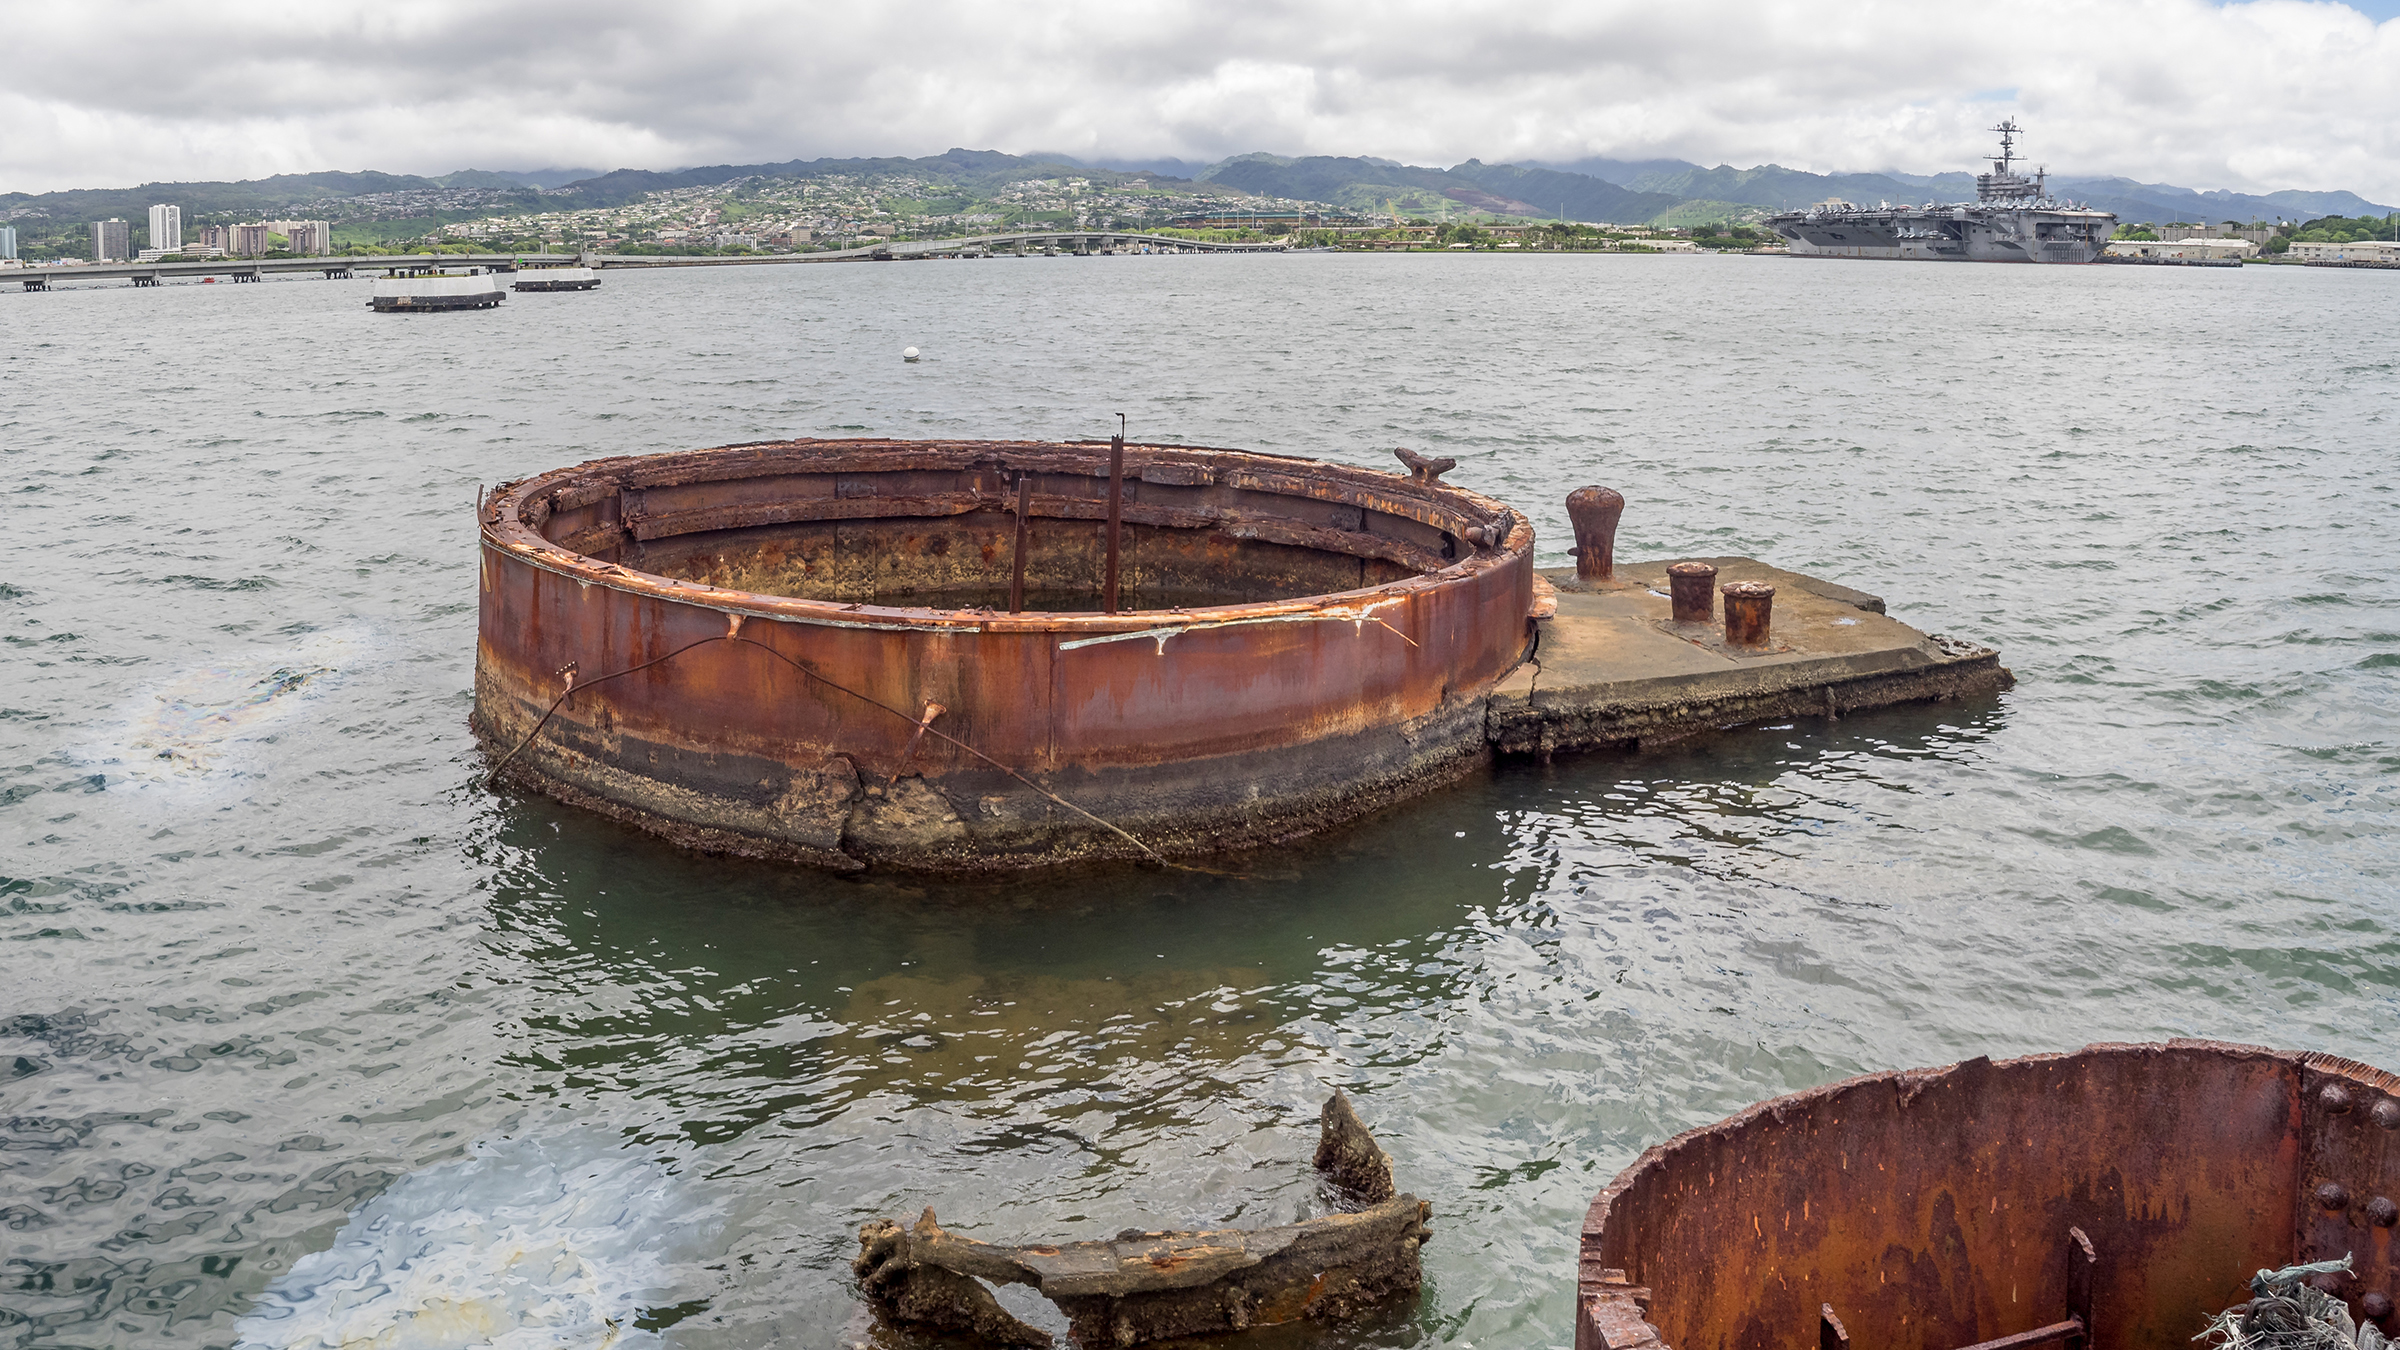 Uss Arizona Team To Present Findings During Pearl Harbor